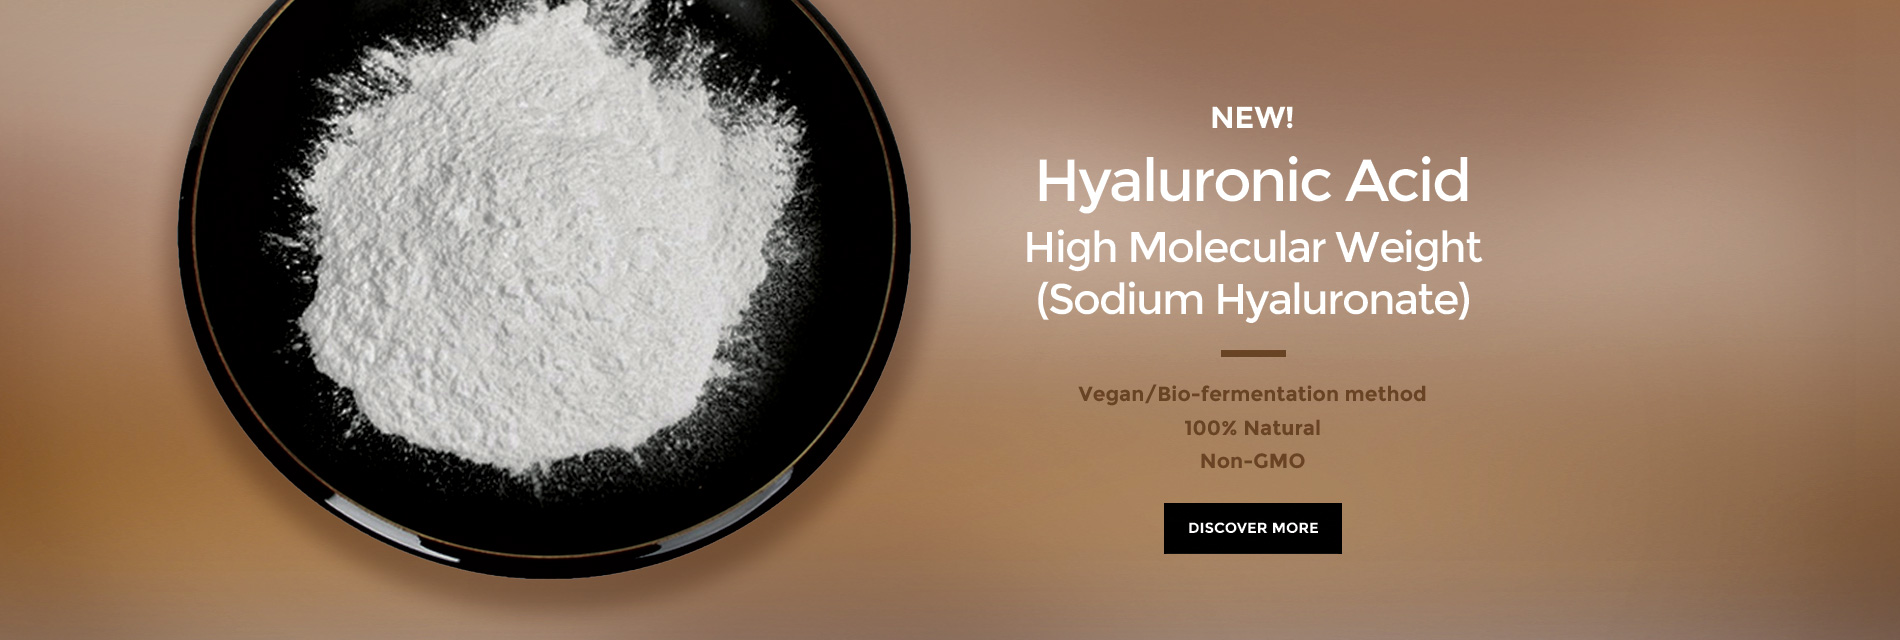 Sodium Hyaluronate (Hyaluronic Acid) HMW